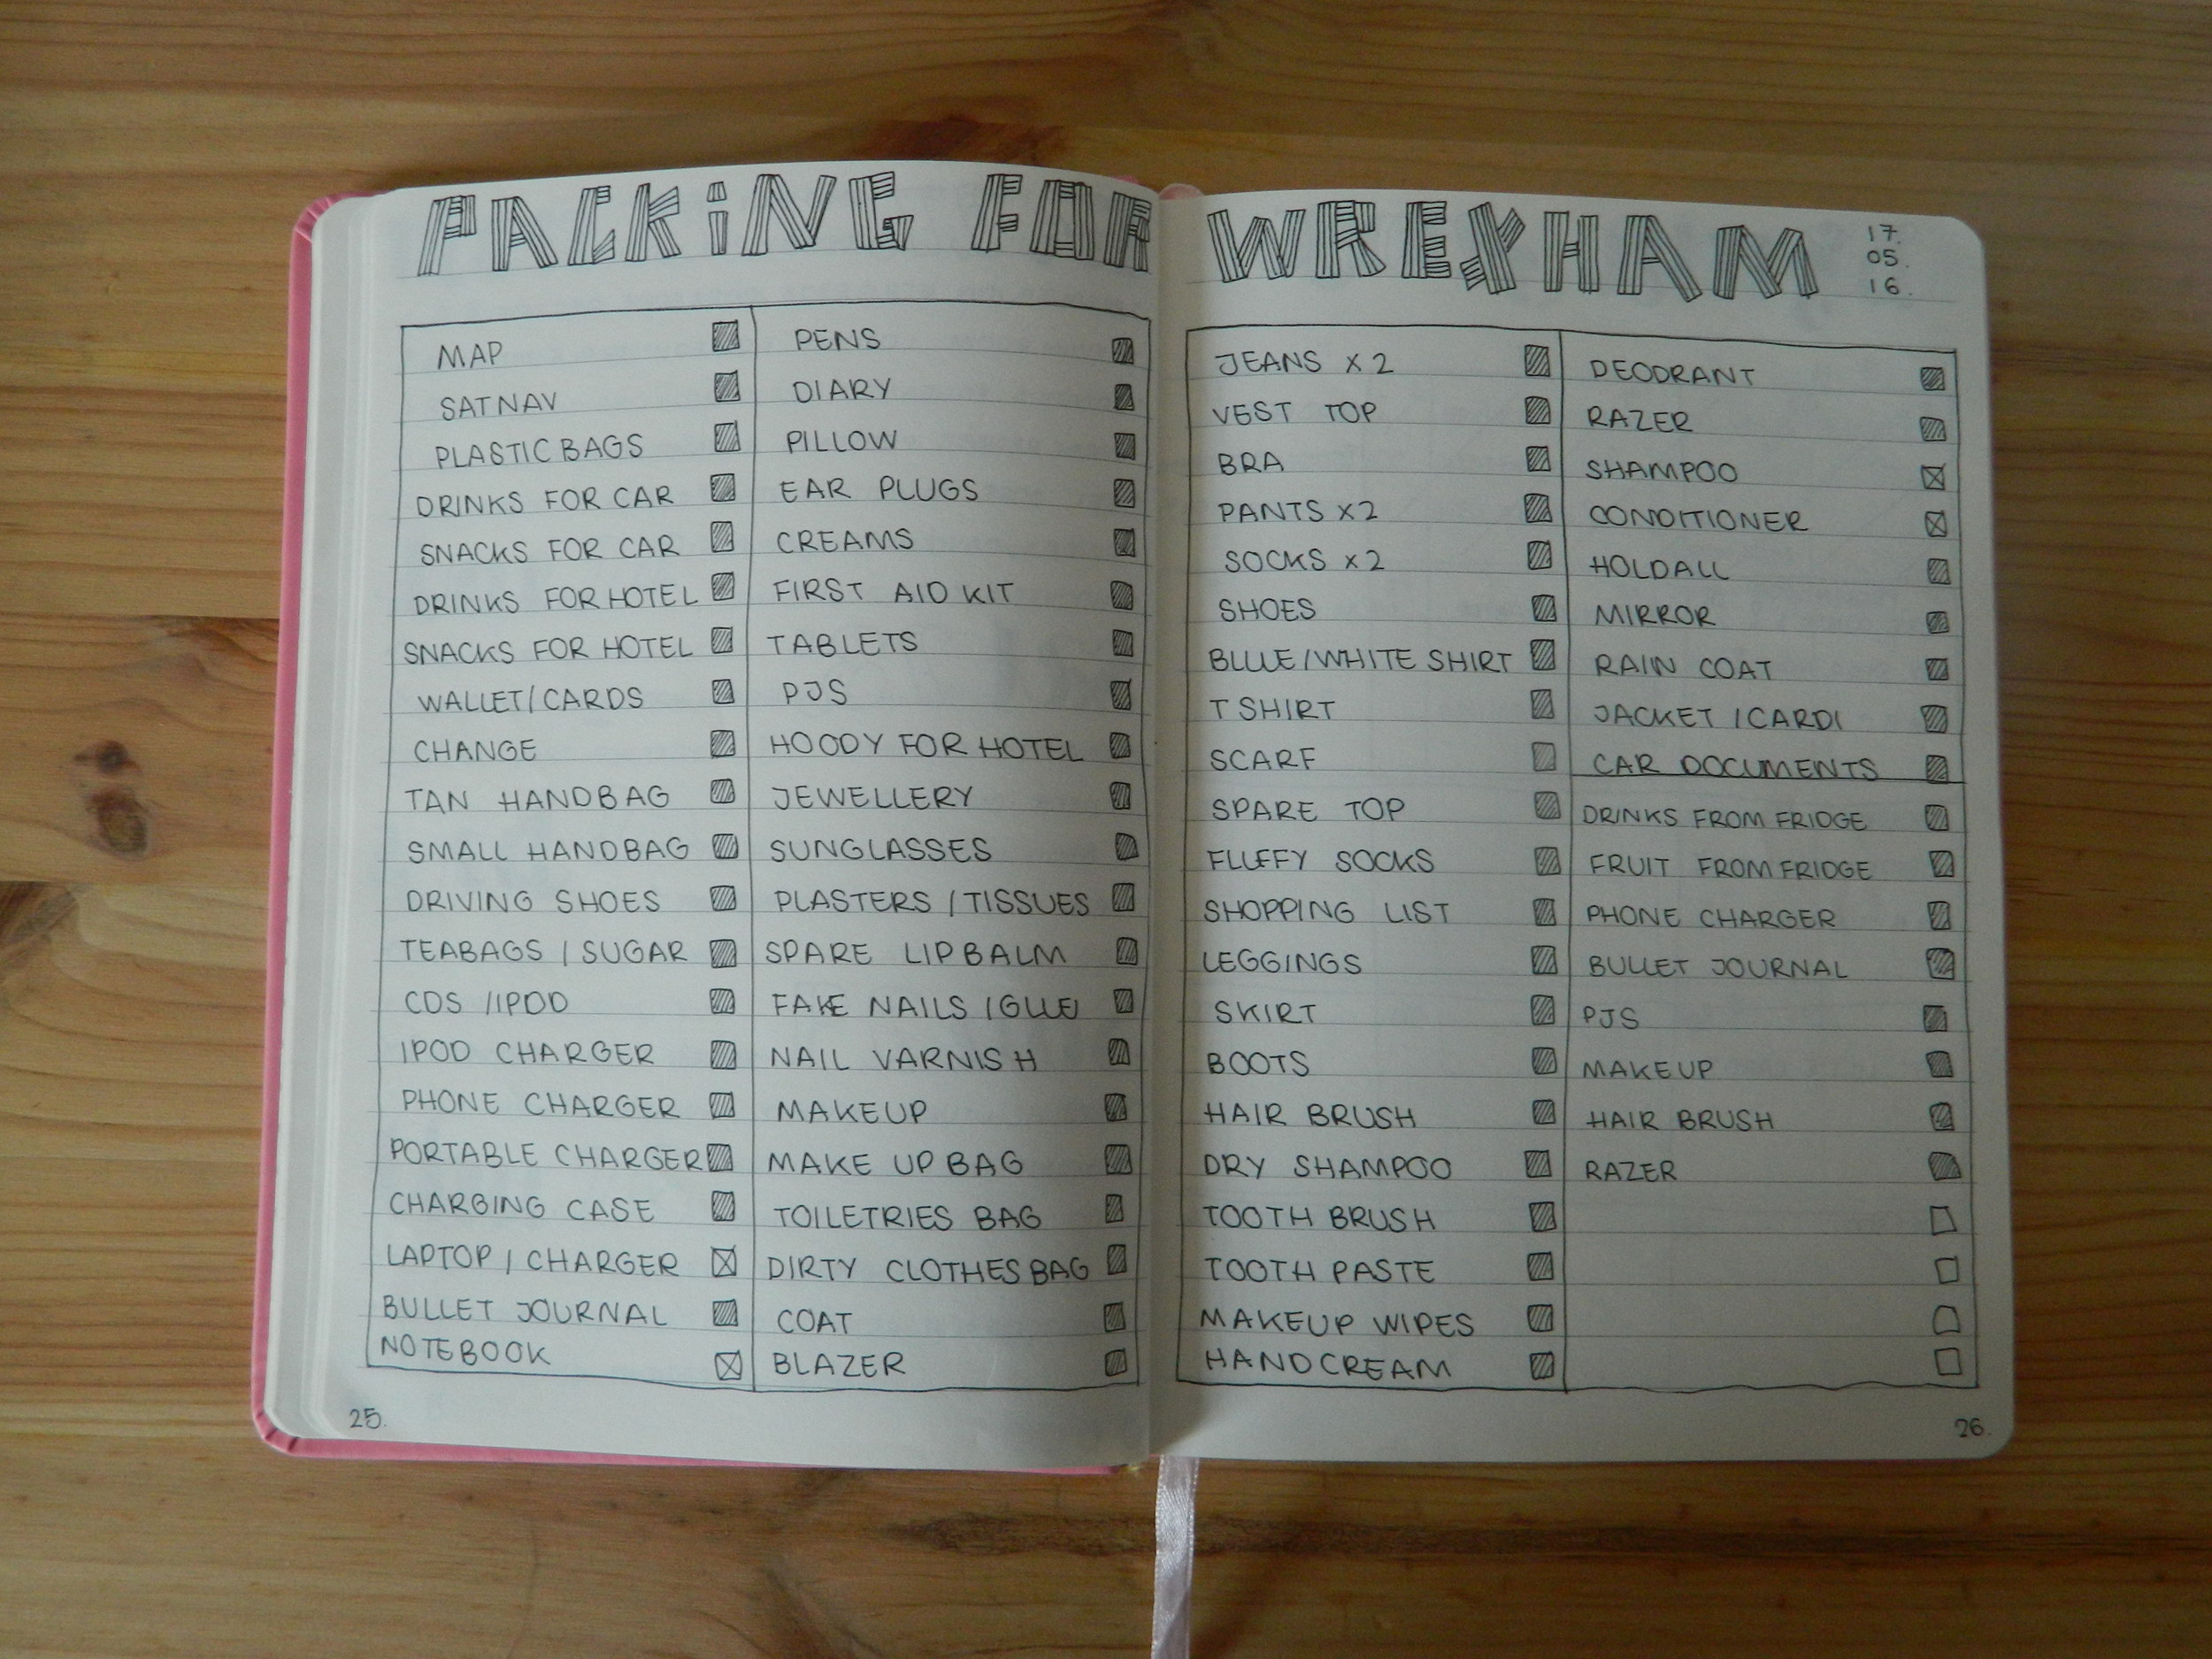 Packing list for Wrexham road trip.